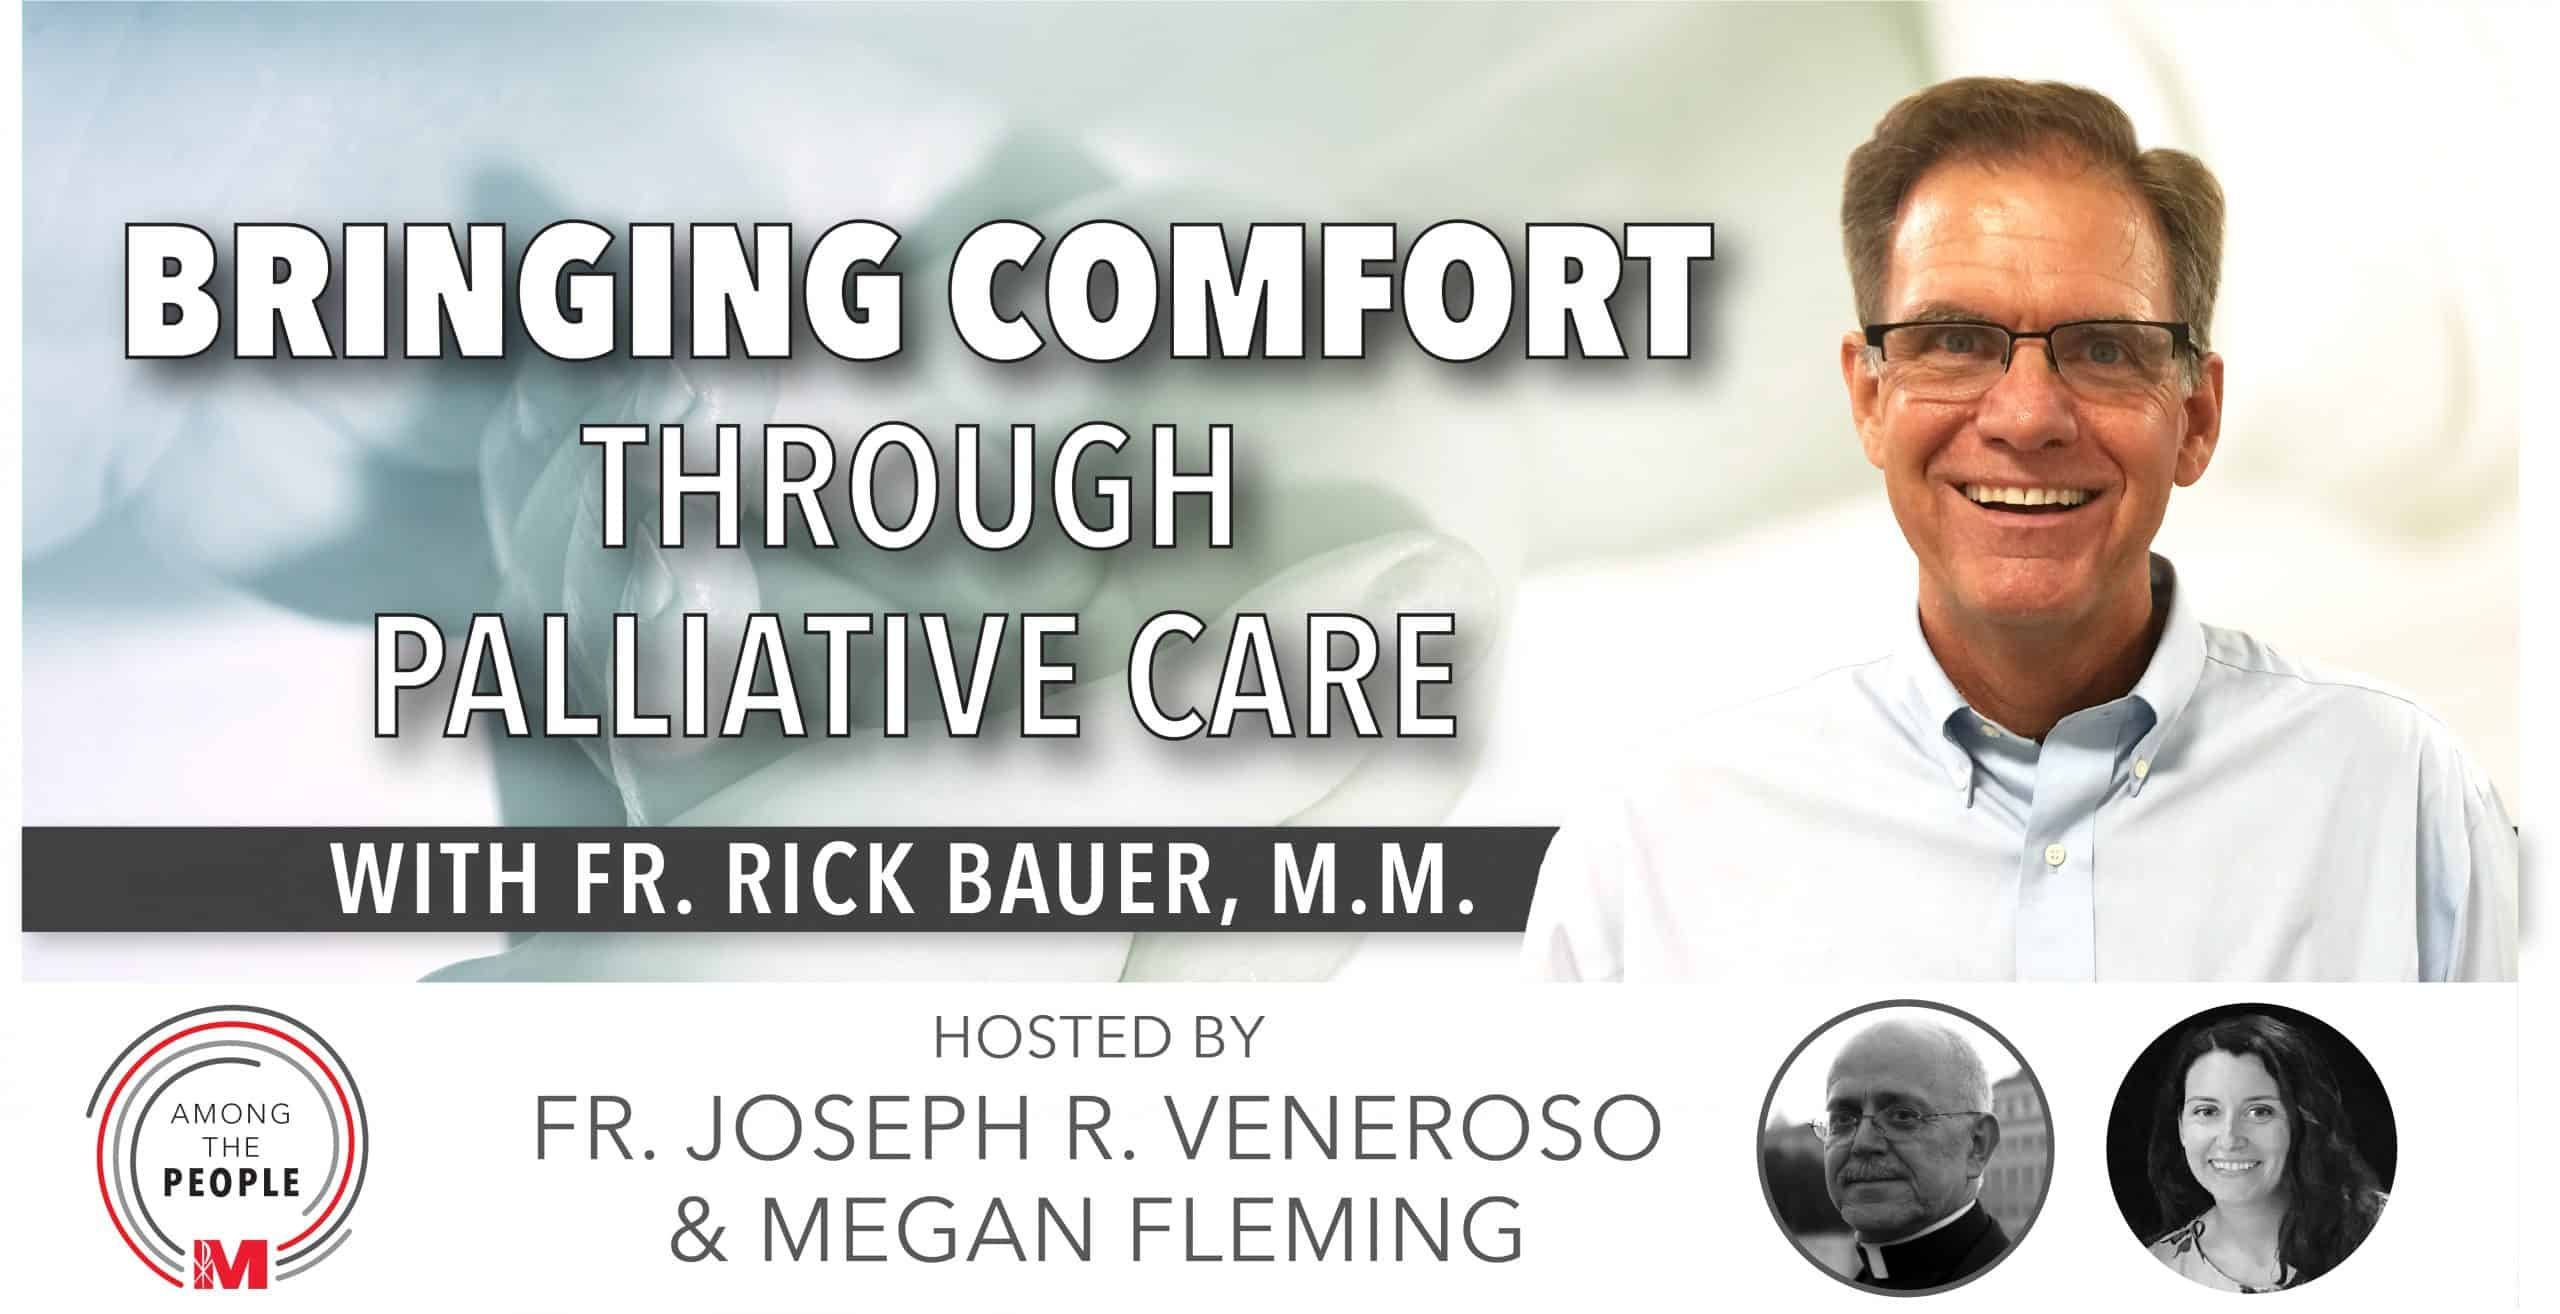 Brining comfort through palliative care, Among the People Episode 15